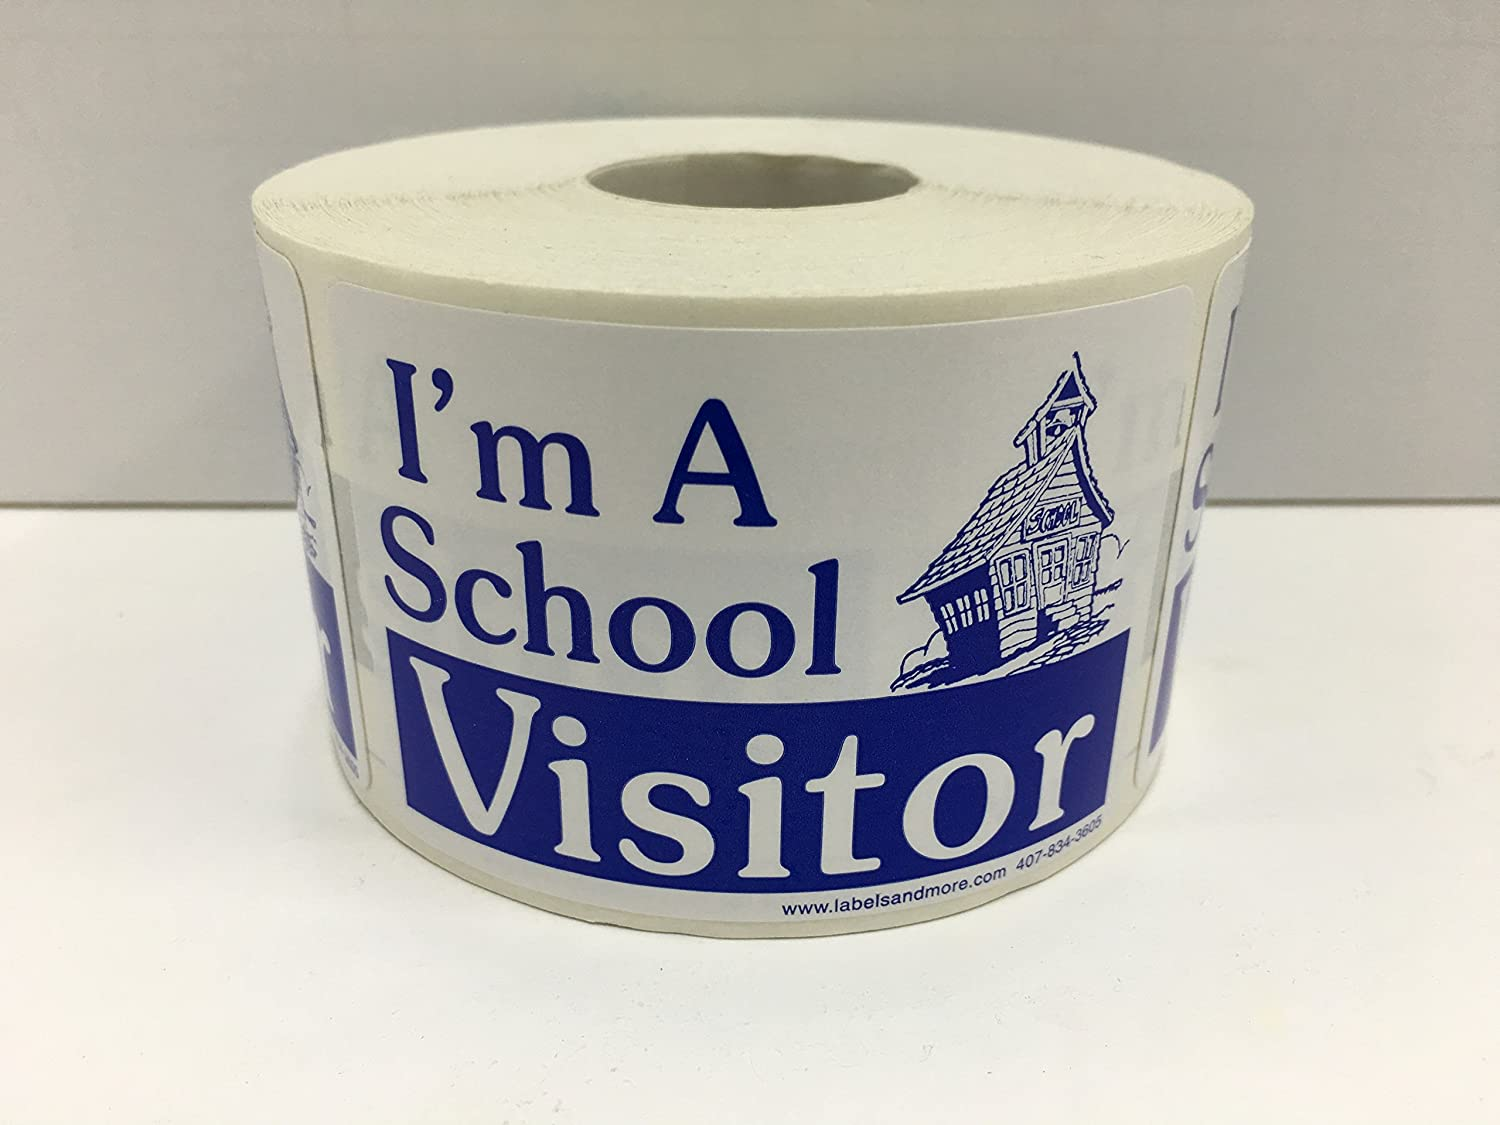 1 Roll 2x3 Blue I'M A SCHOOL VISITOR Name Tag Badge Identification Stickers 500 Labels Per Roll